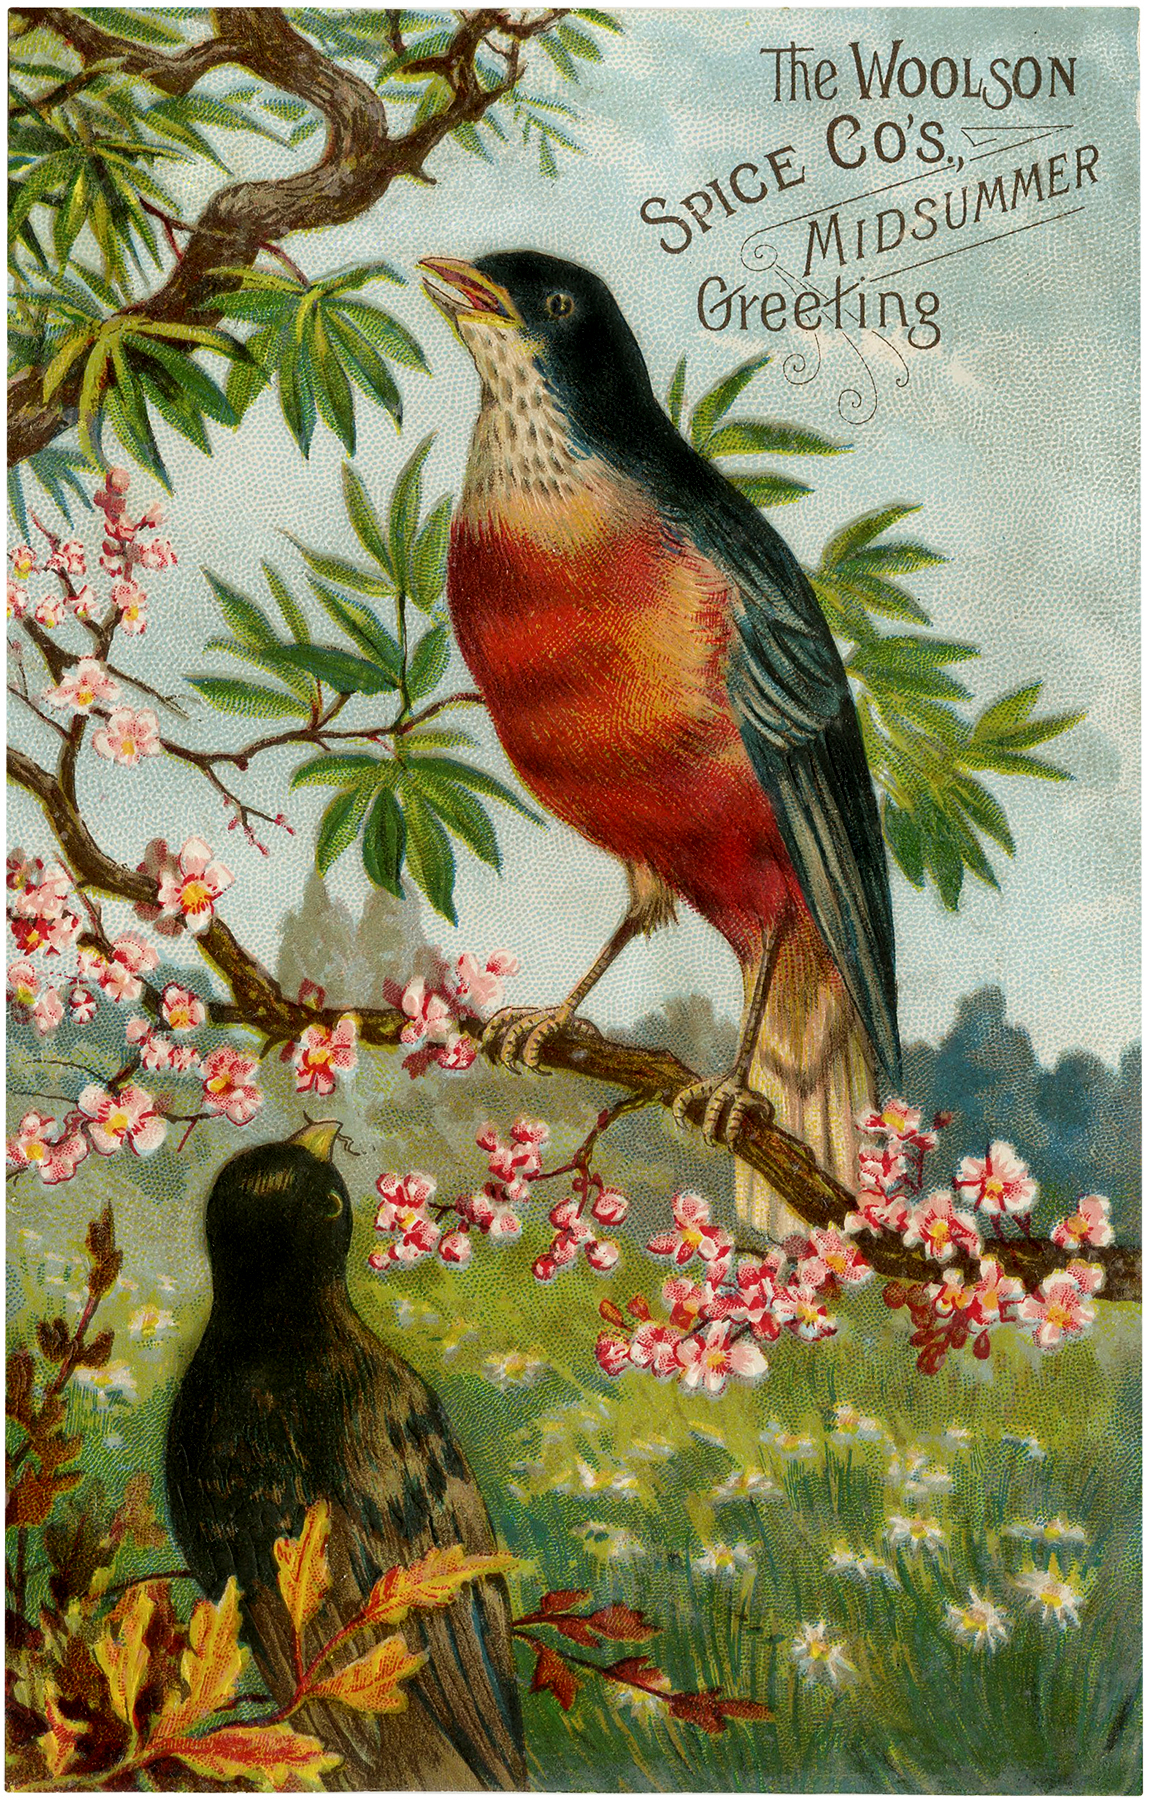 Vintage Advertising Bird Image